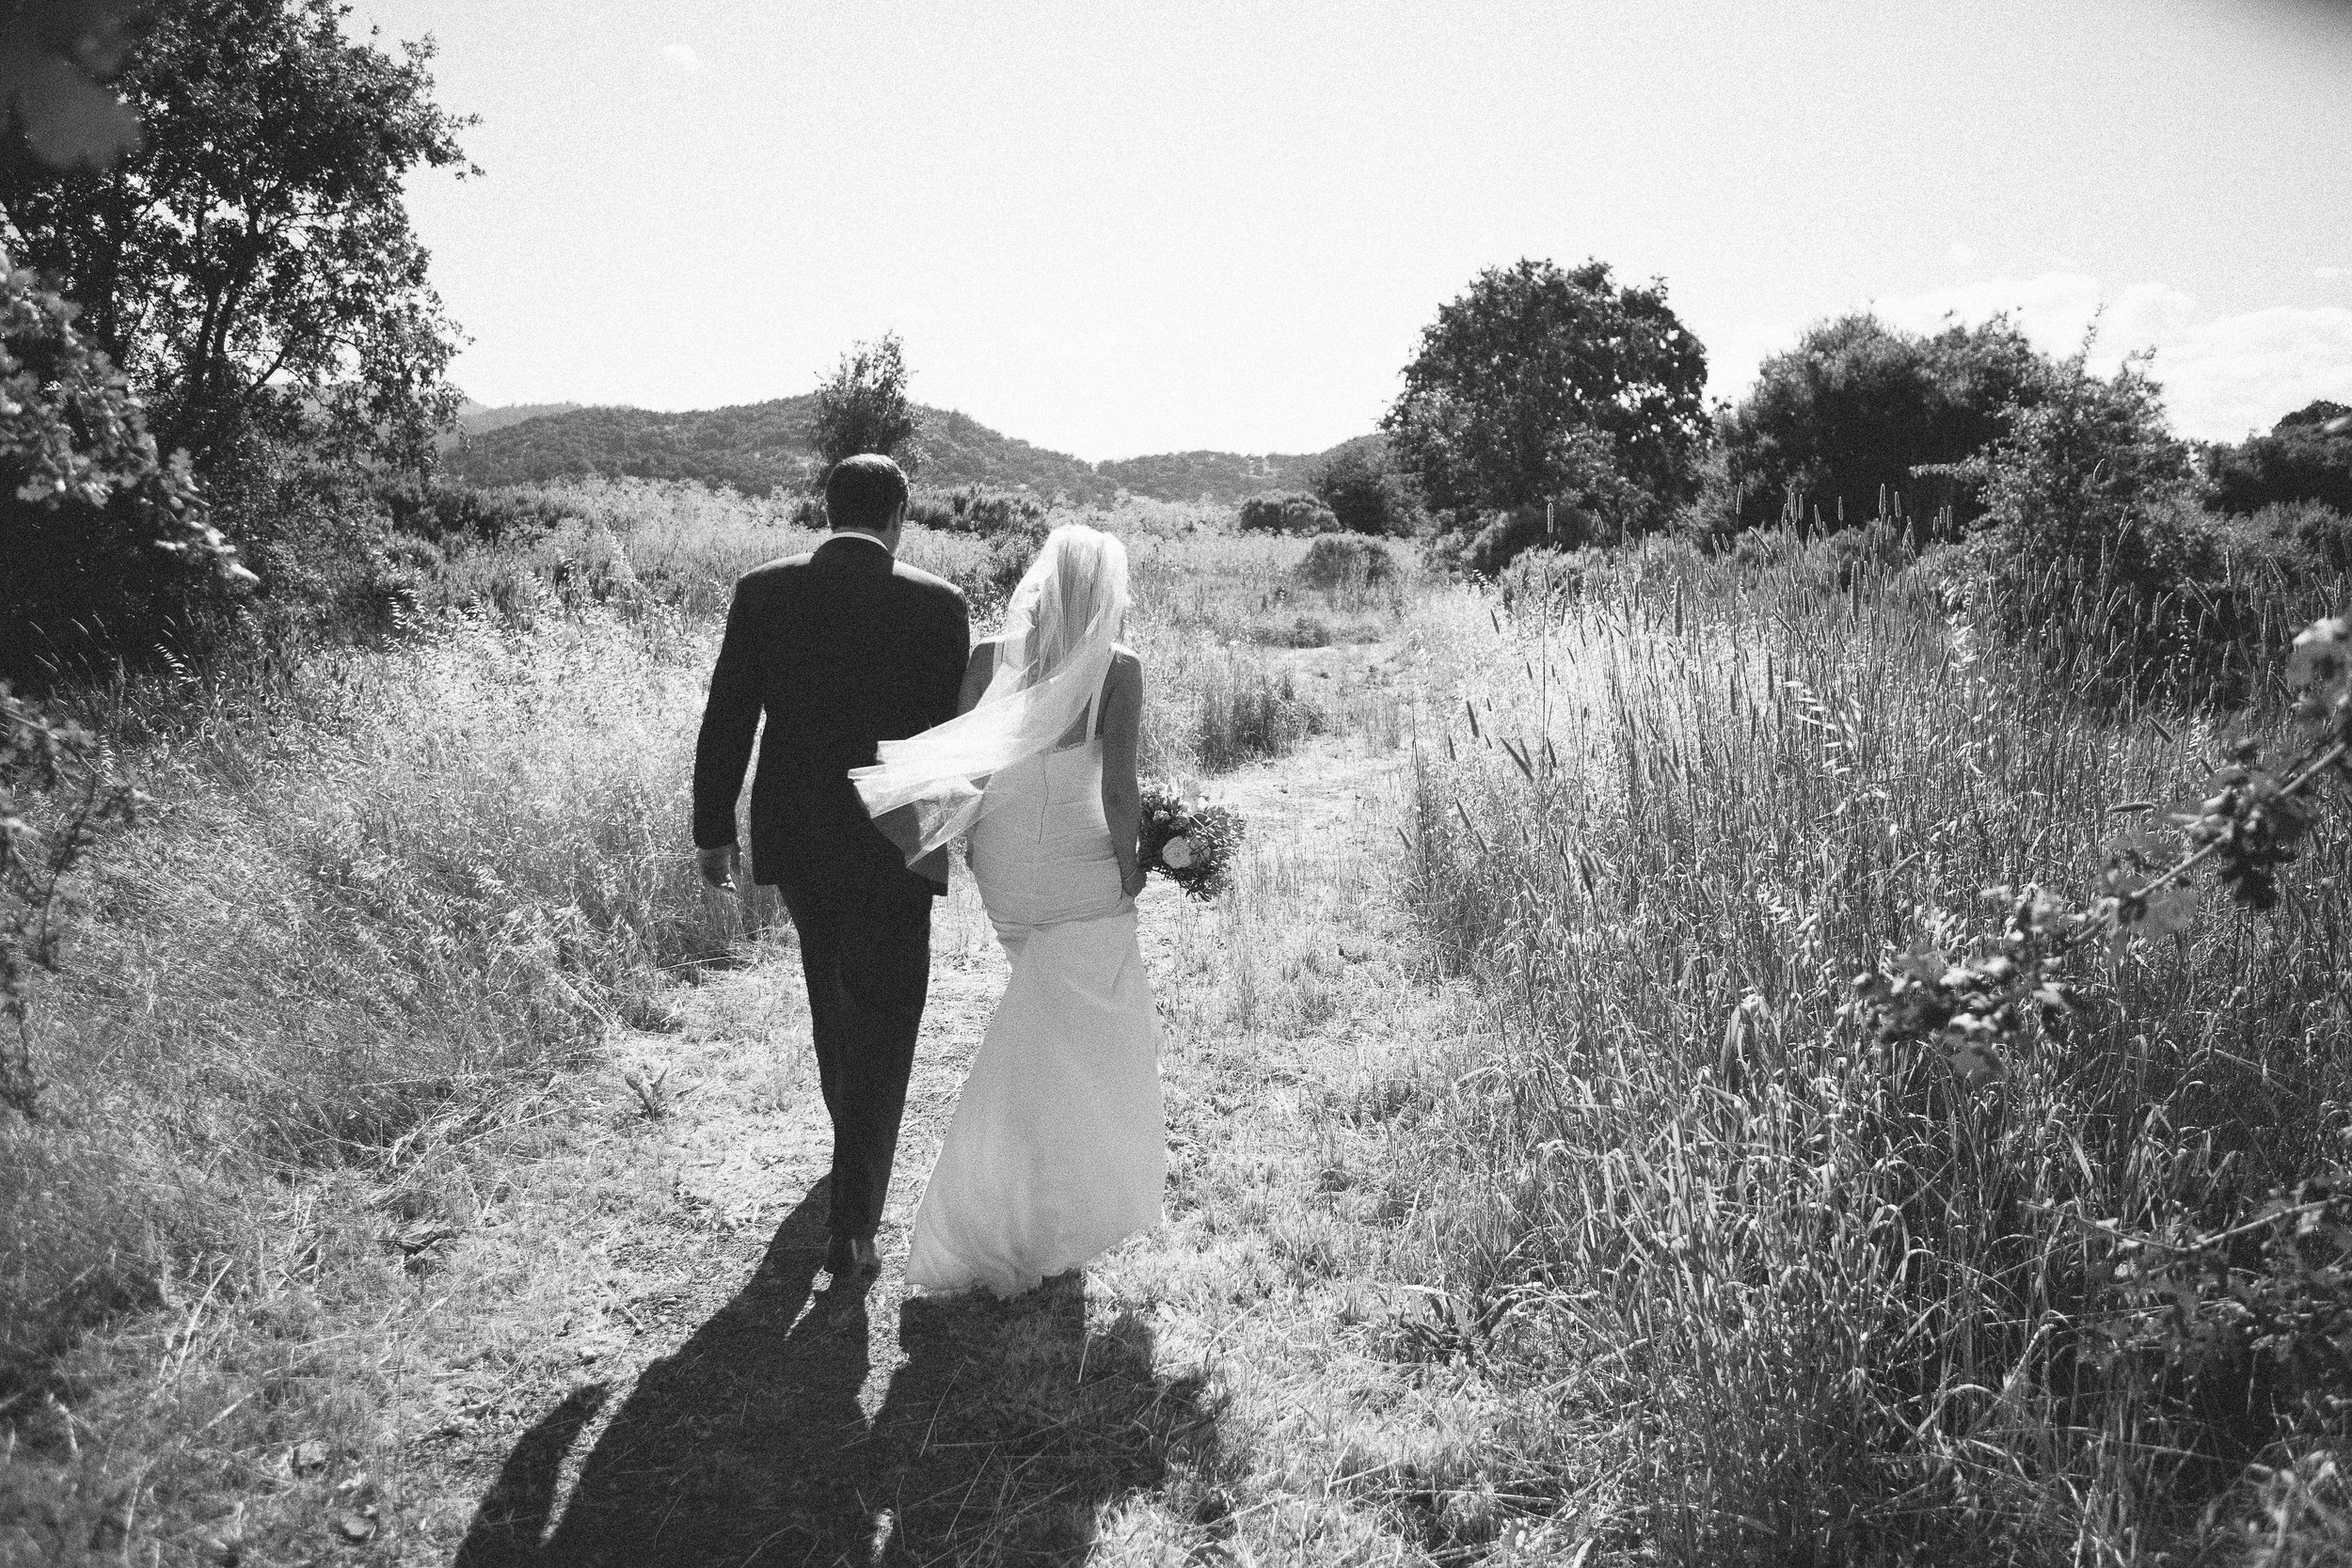 Every wedding that I photograph is a custom collaboration with the couple to fulfill their vision.